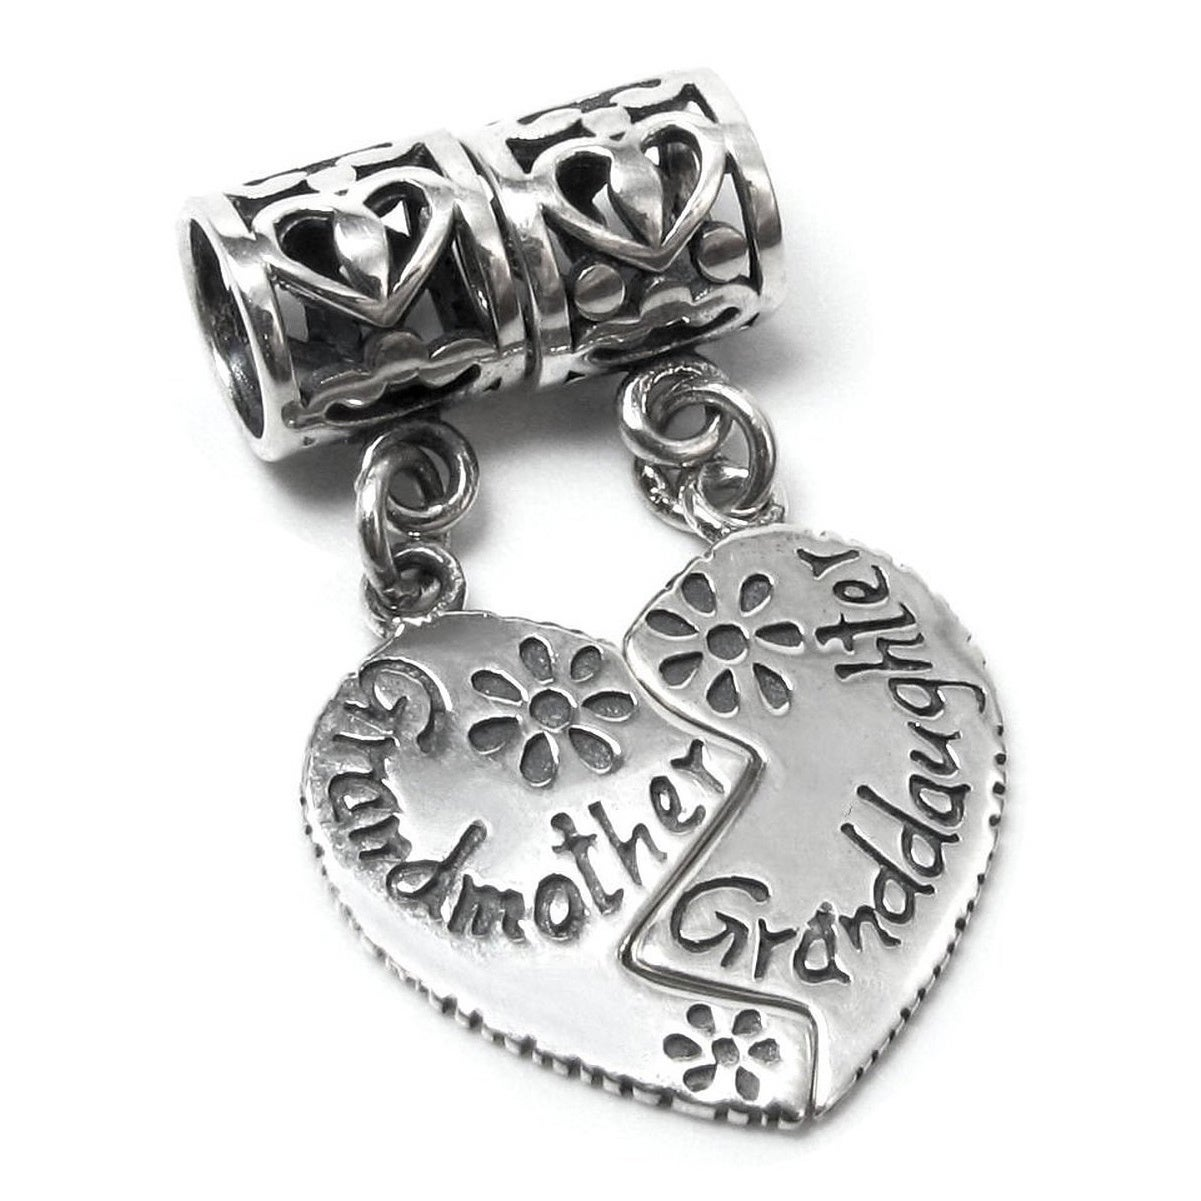 10 x Holly Pendants  Charms in Antique Silver Finish